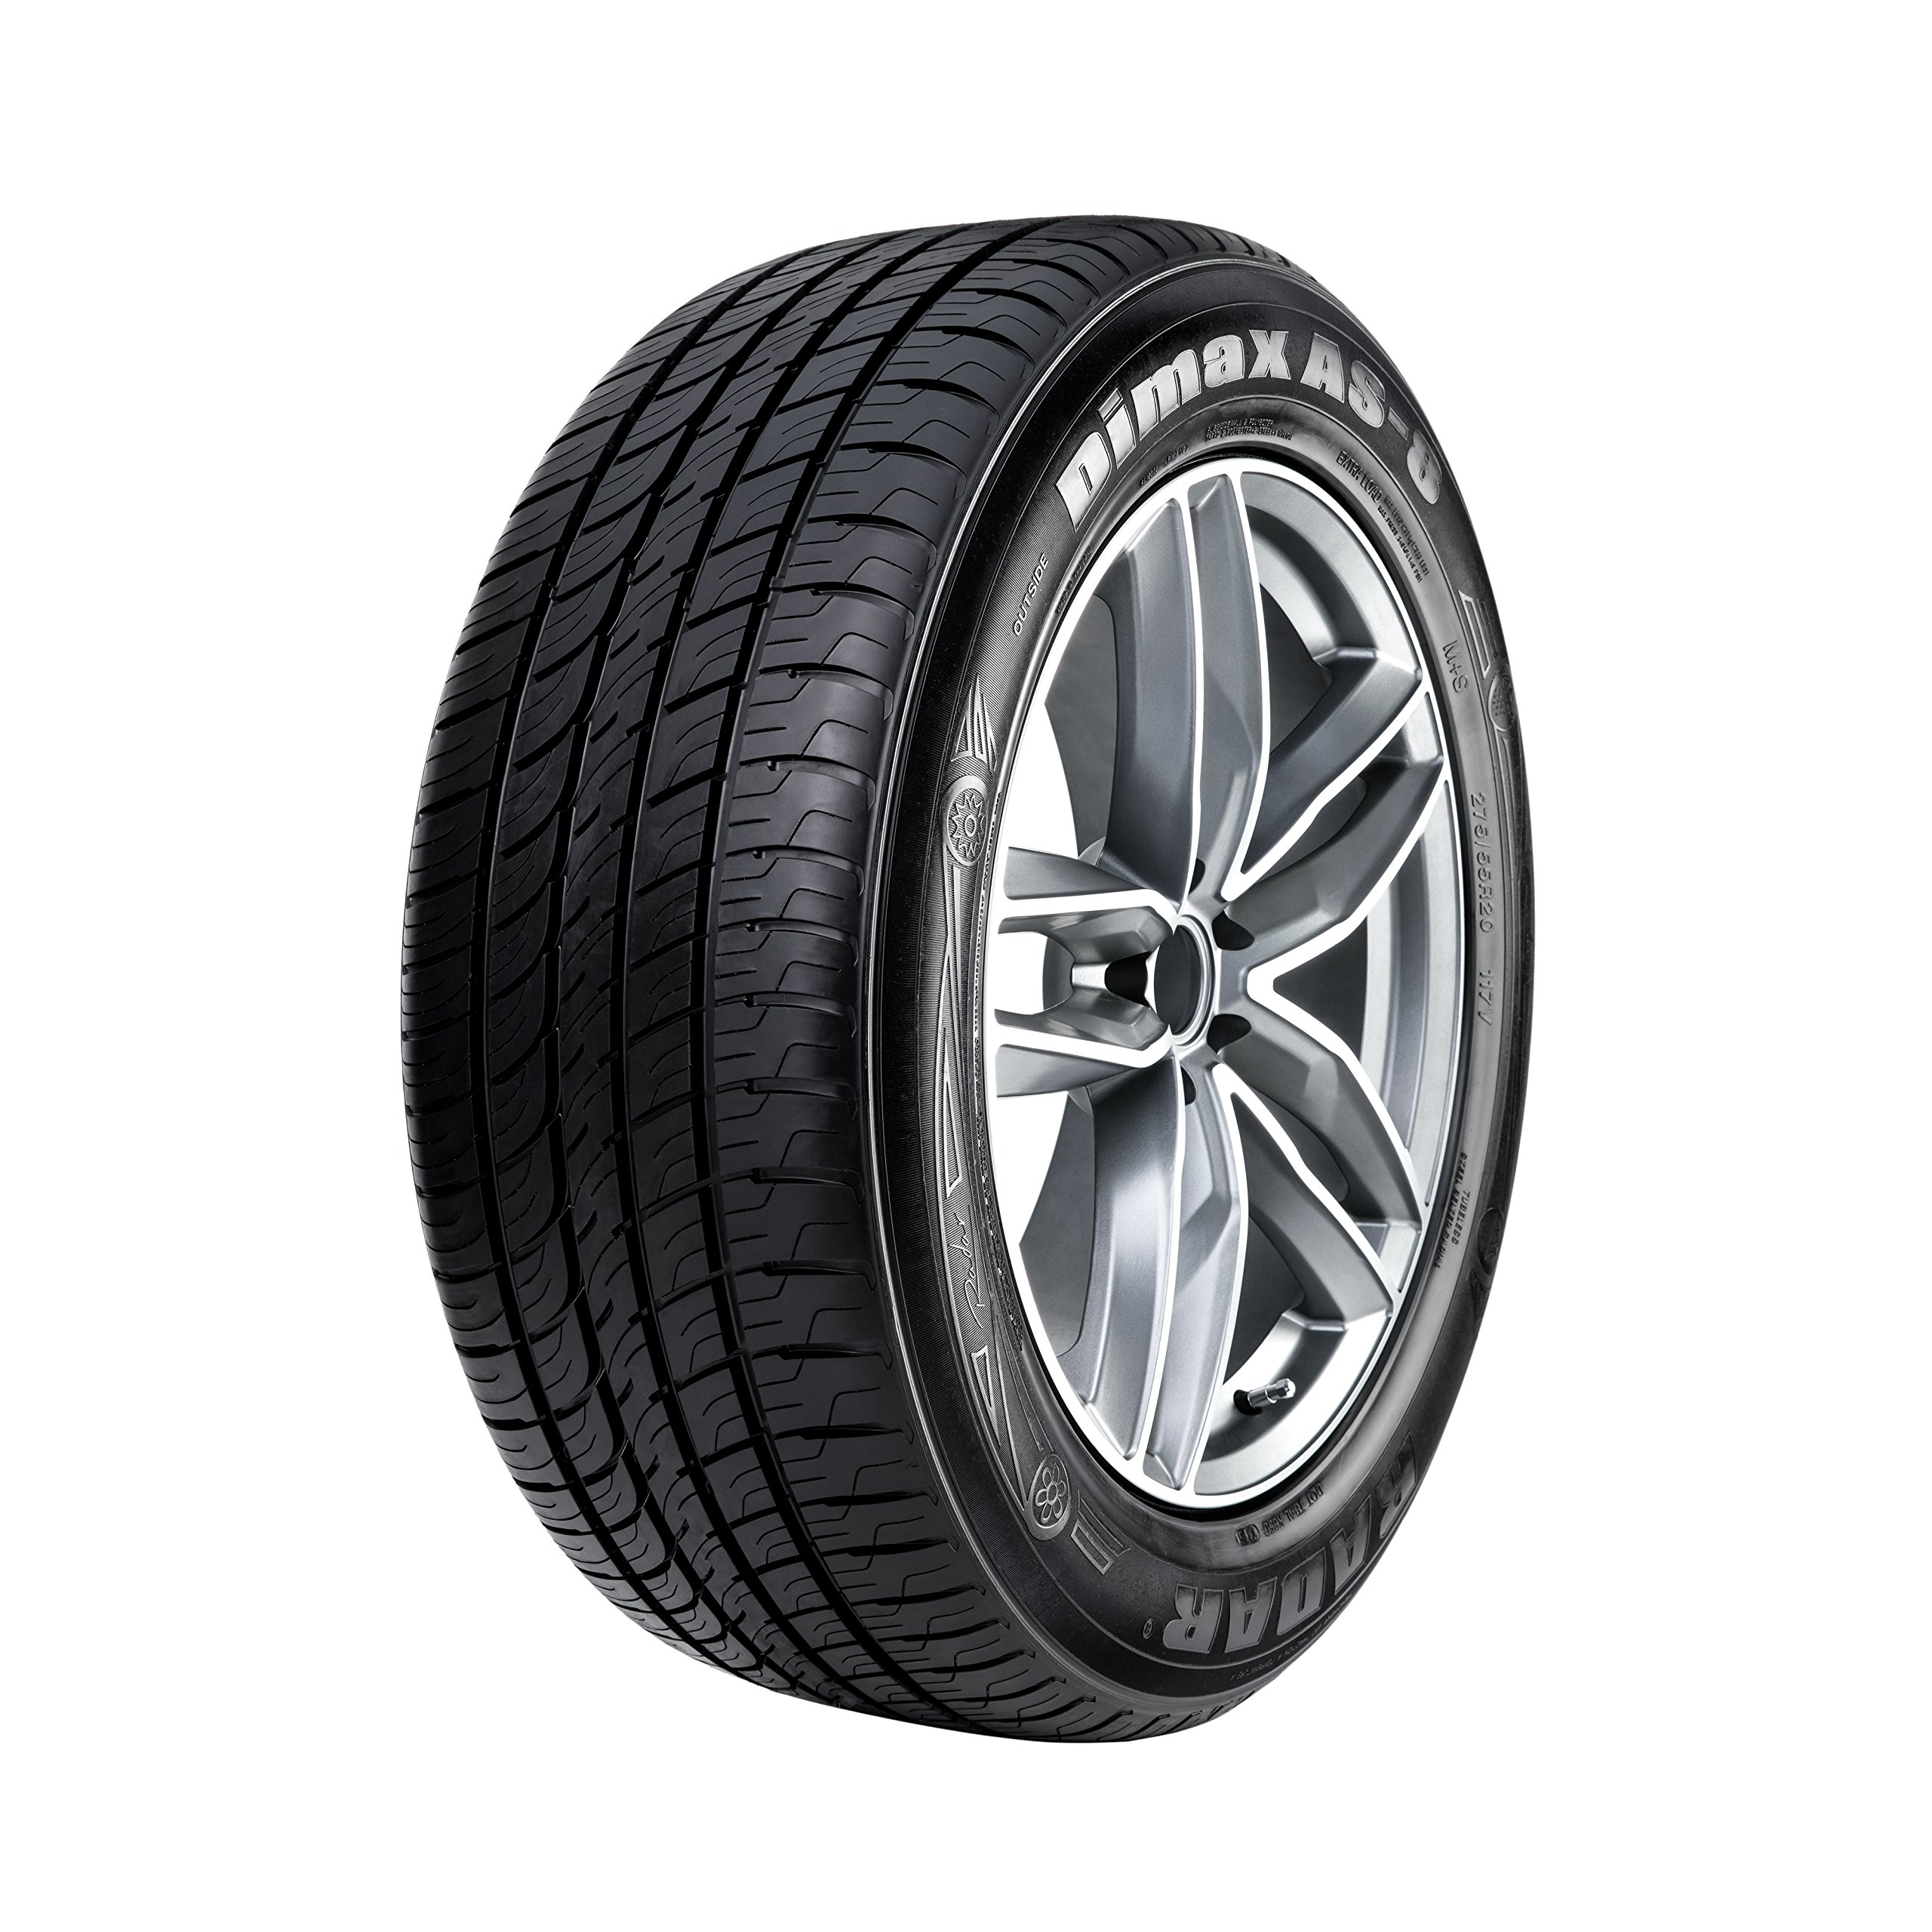 Radar Tires Dimax AS-8 All-Season Radial Tire - 225/60R17 103V